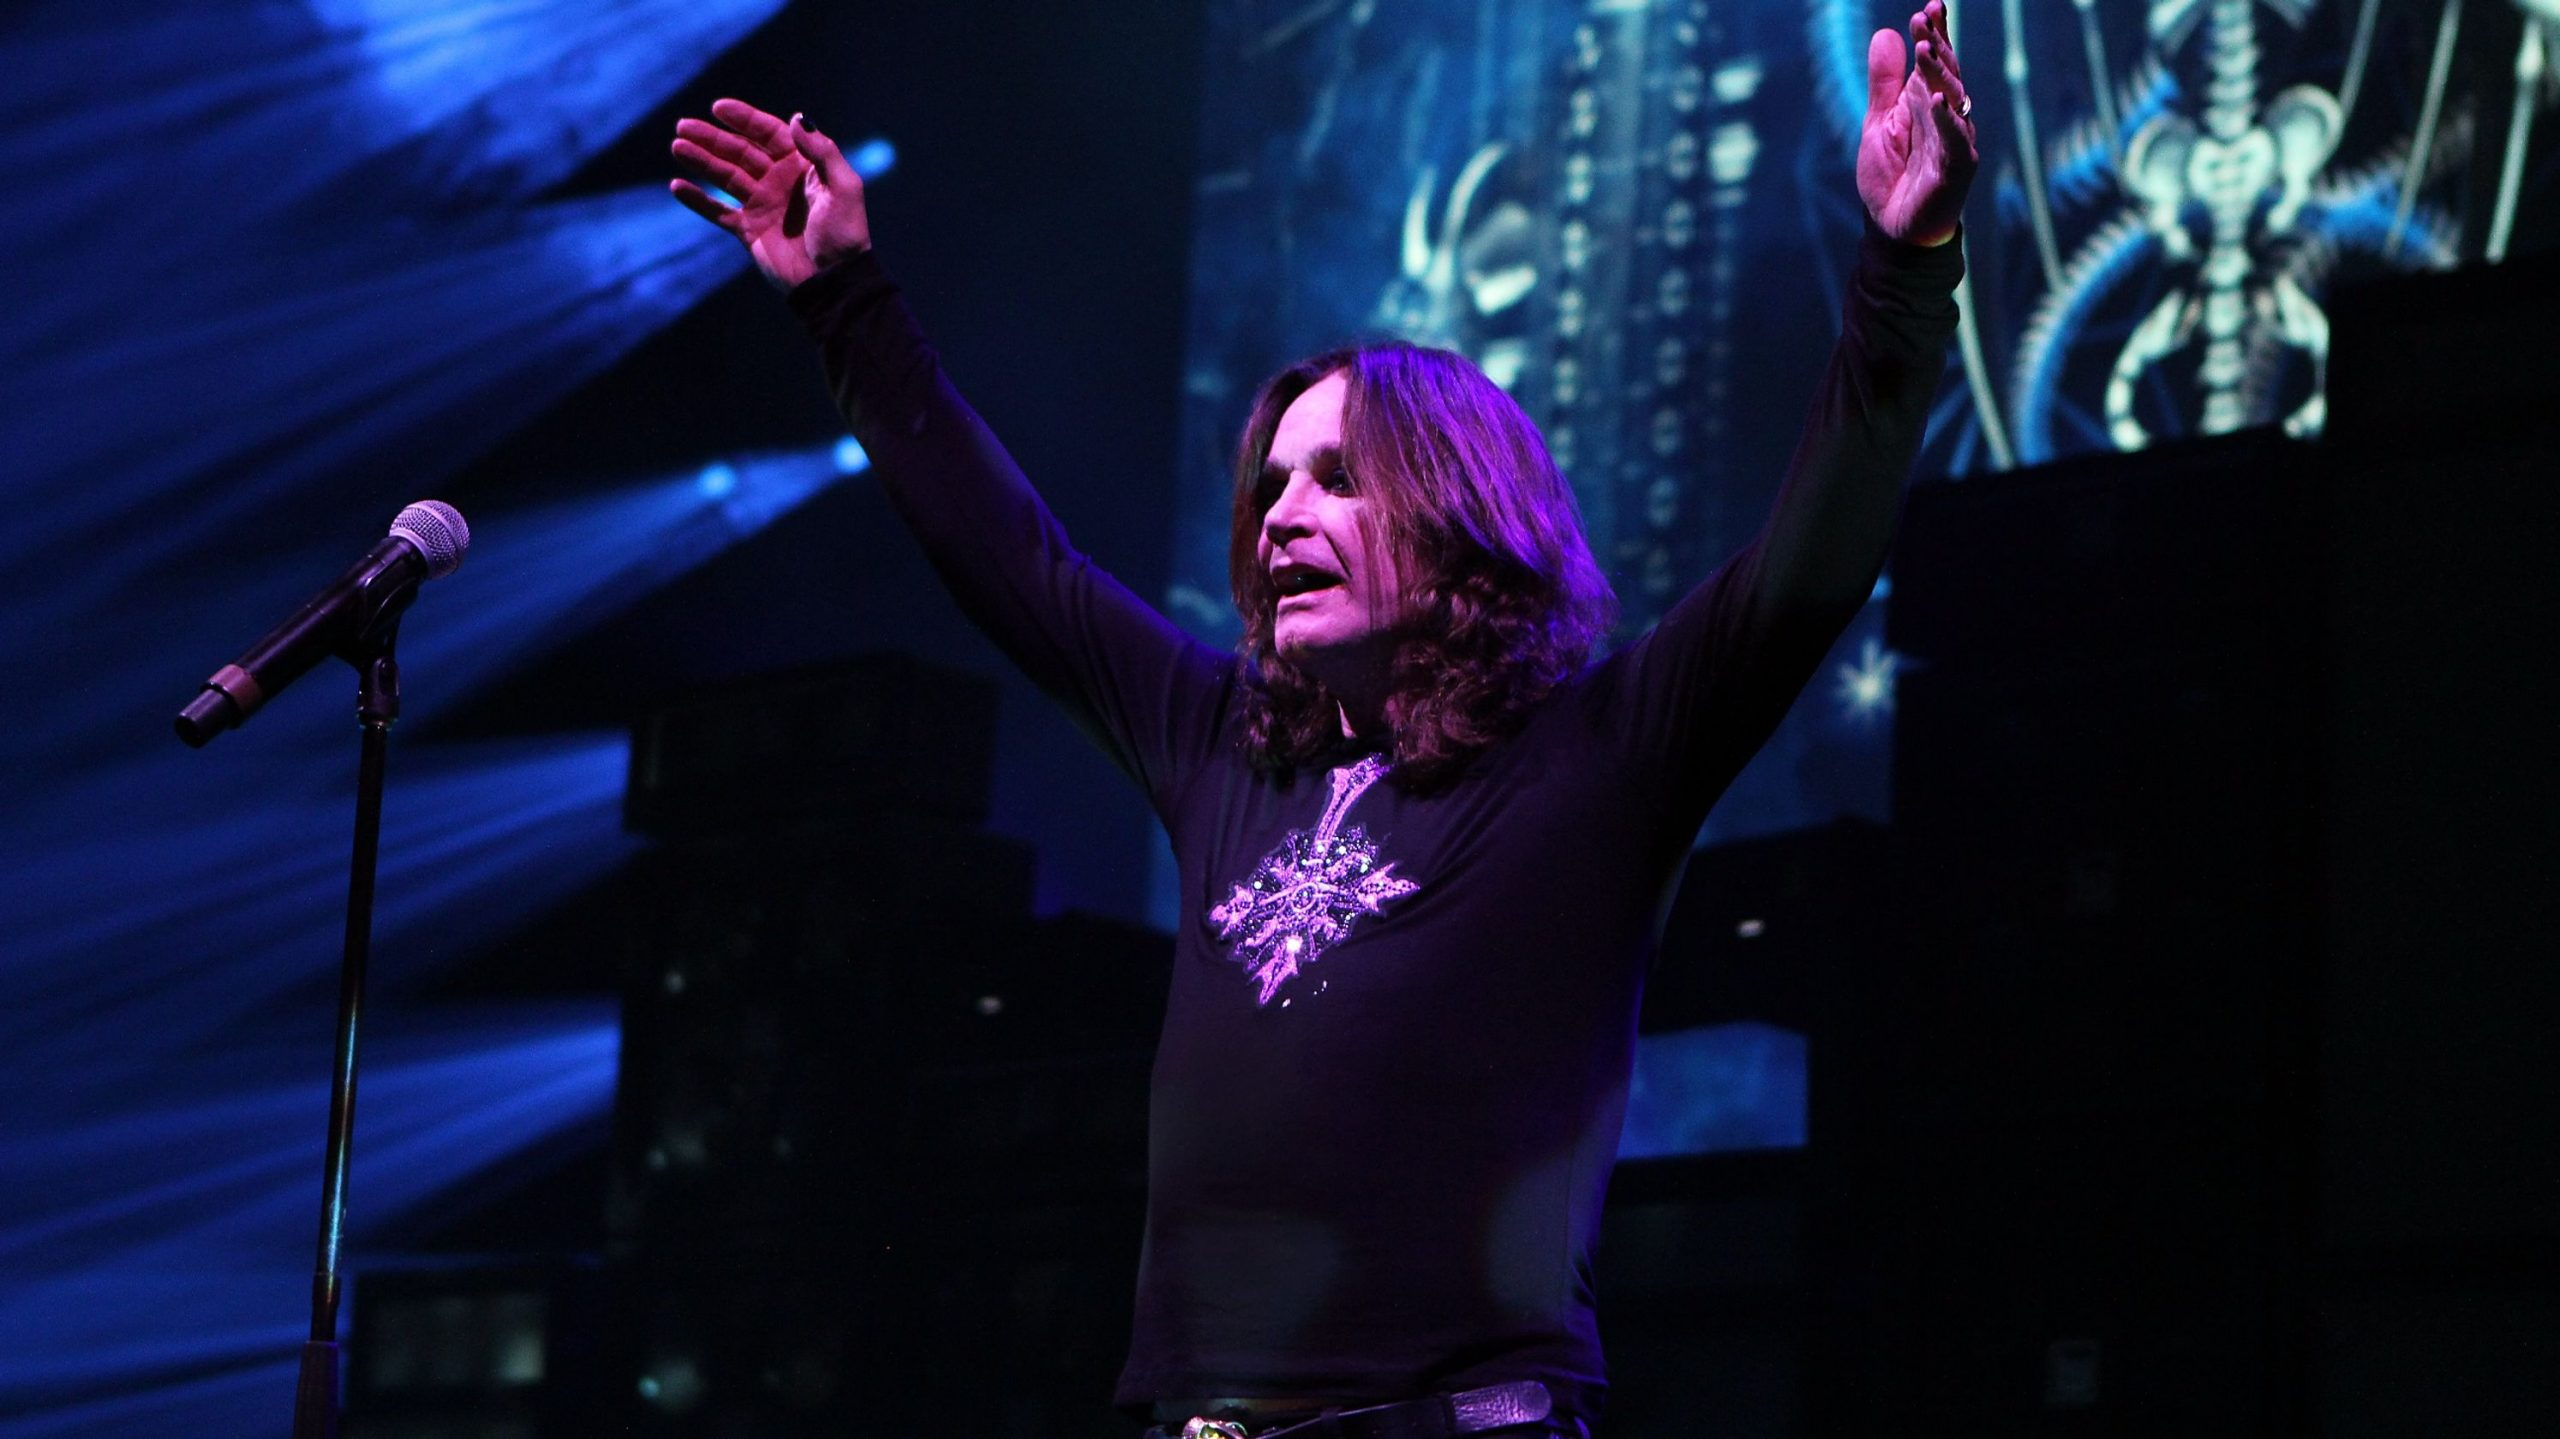 Ozzy Osbourne to play Hersheypark Stadium for No More Tours 2 in 2019